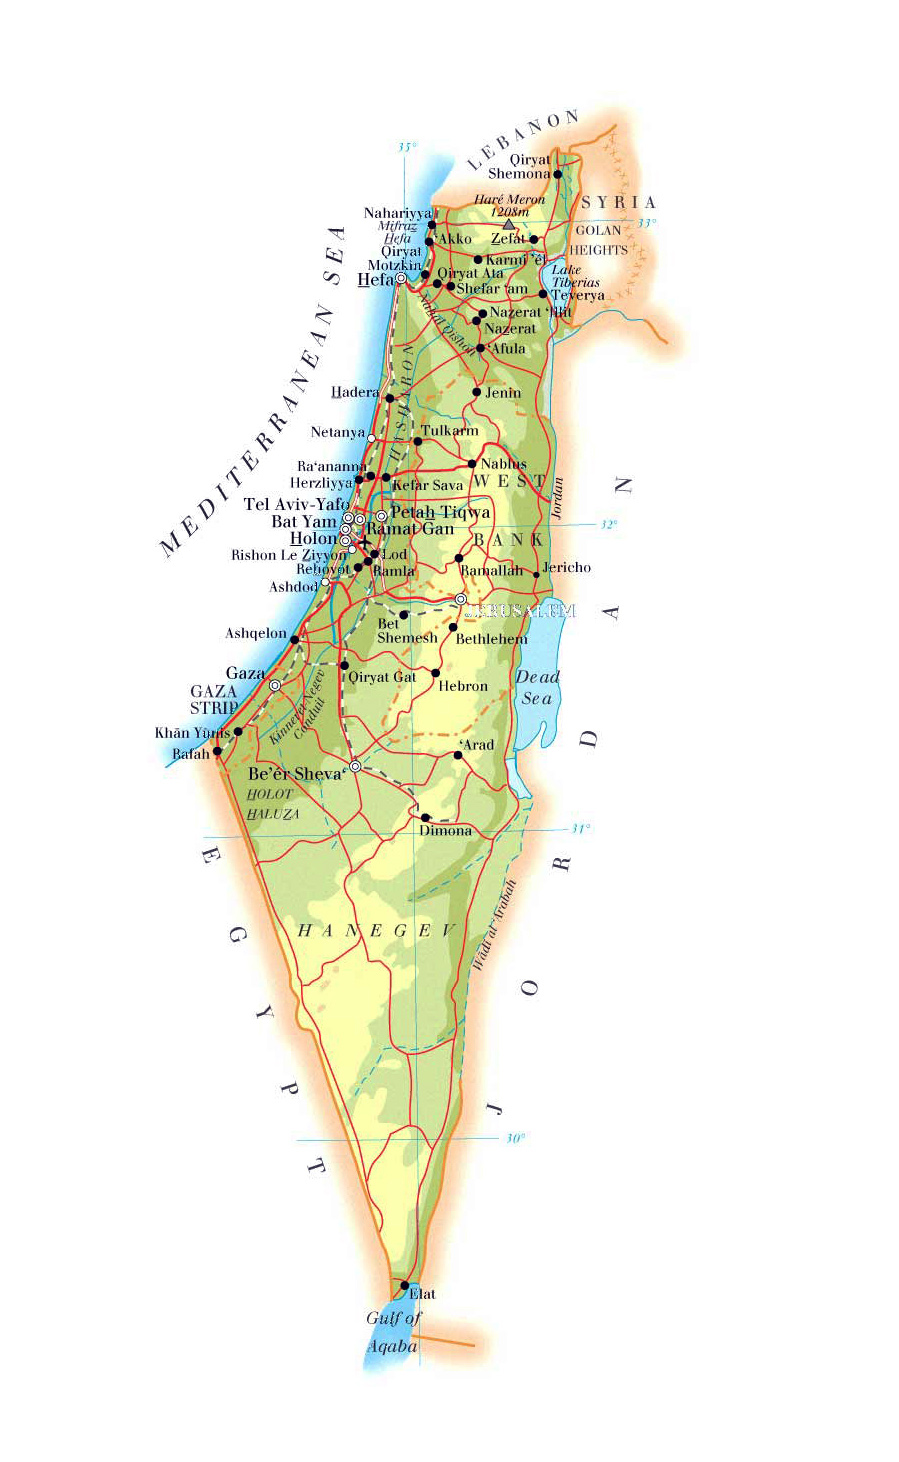 Road And Physical Map Of Israel Israel Road And Physical Map - Map of israel